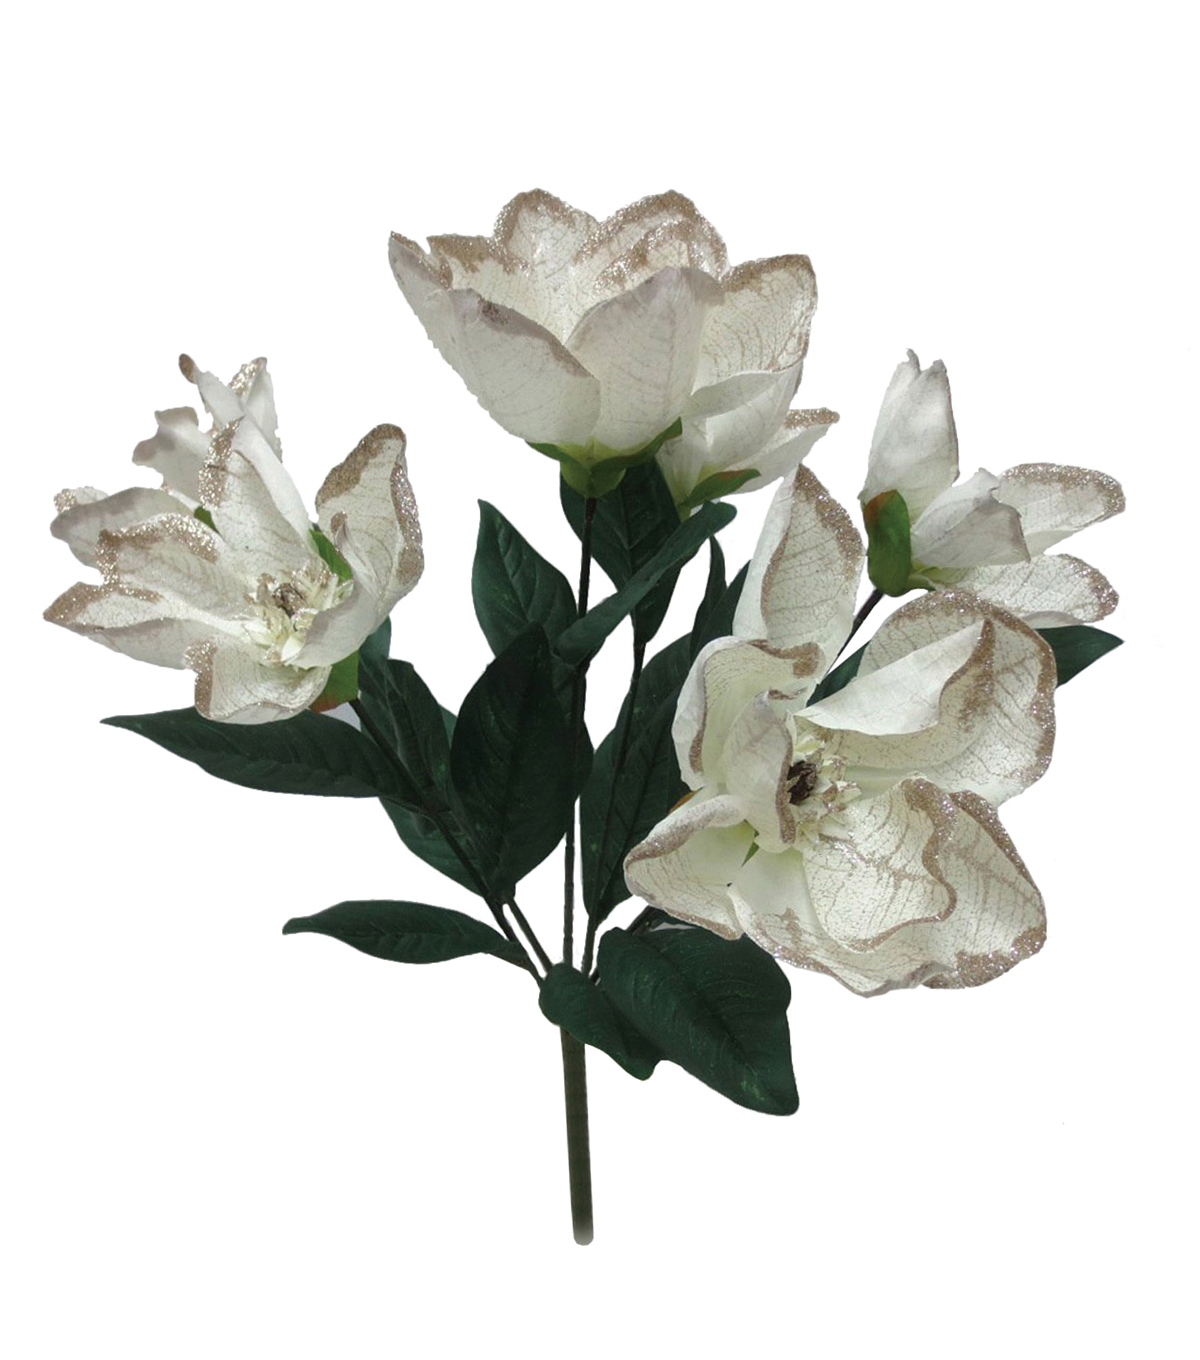 Blooming Holiday Christmas Glitter Tip Magnolia Bush-Ivory